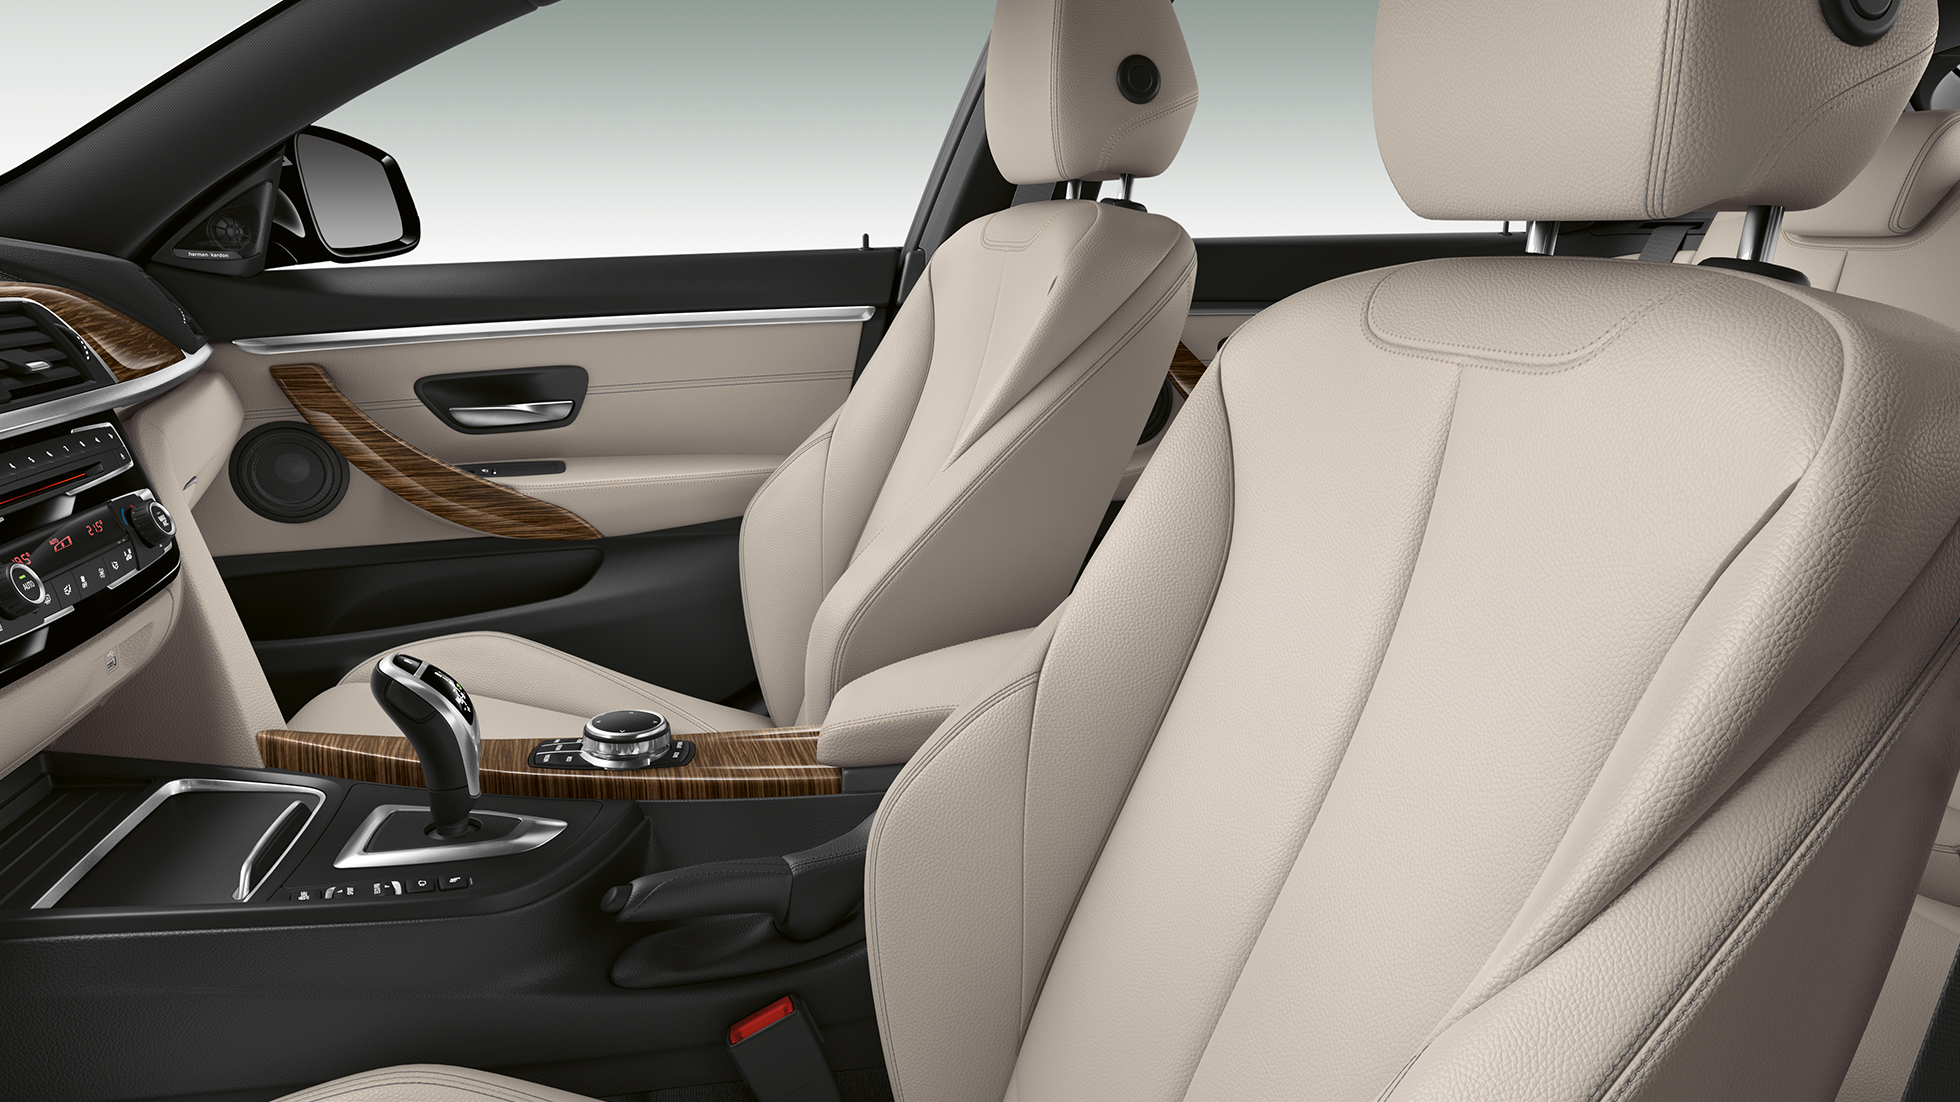 Interiorul BMW Seria 4 Gran Coupé, Model Luxury Line